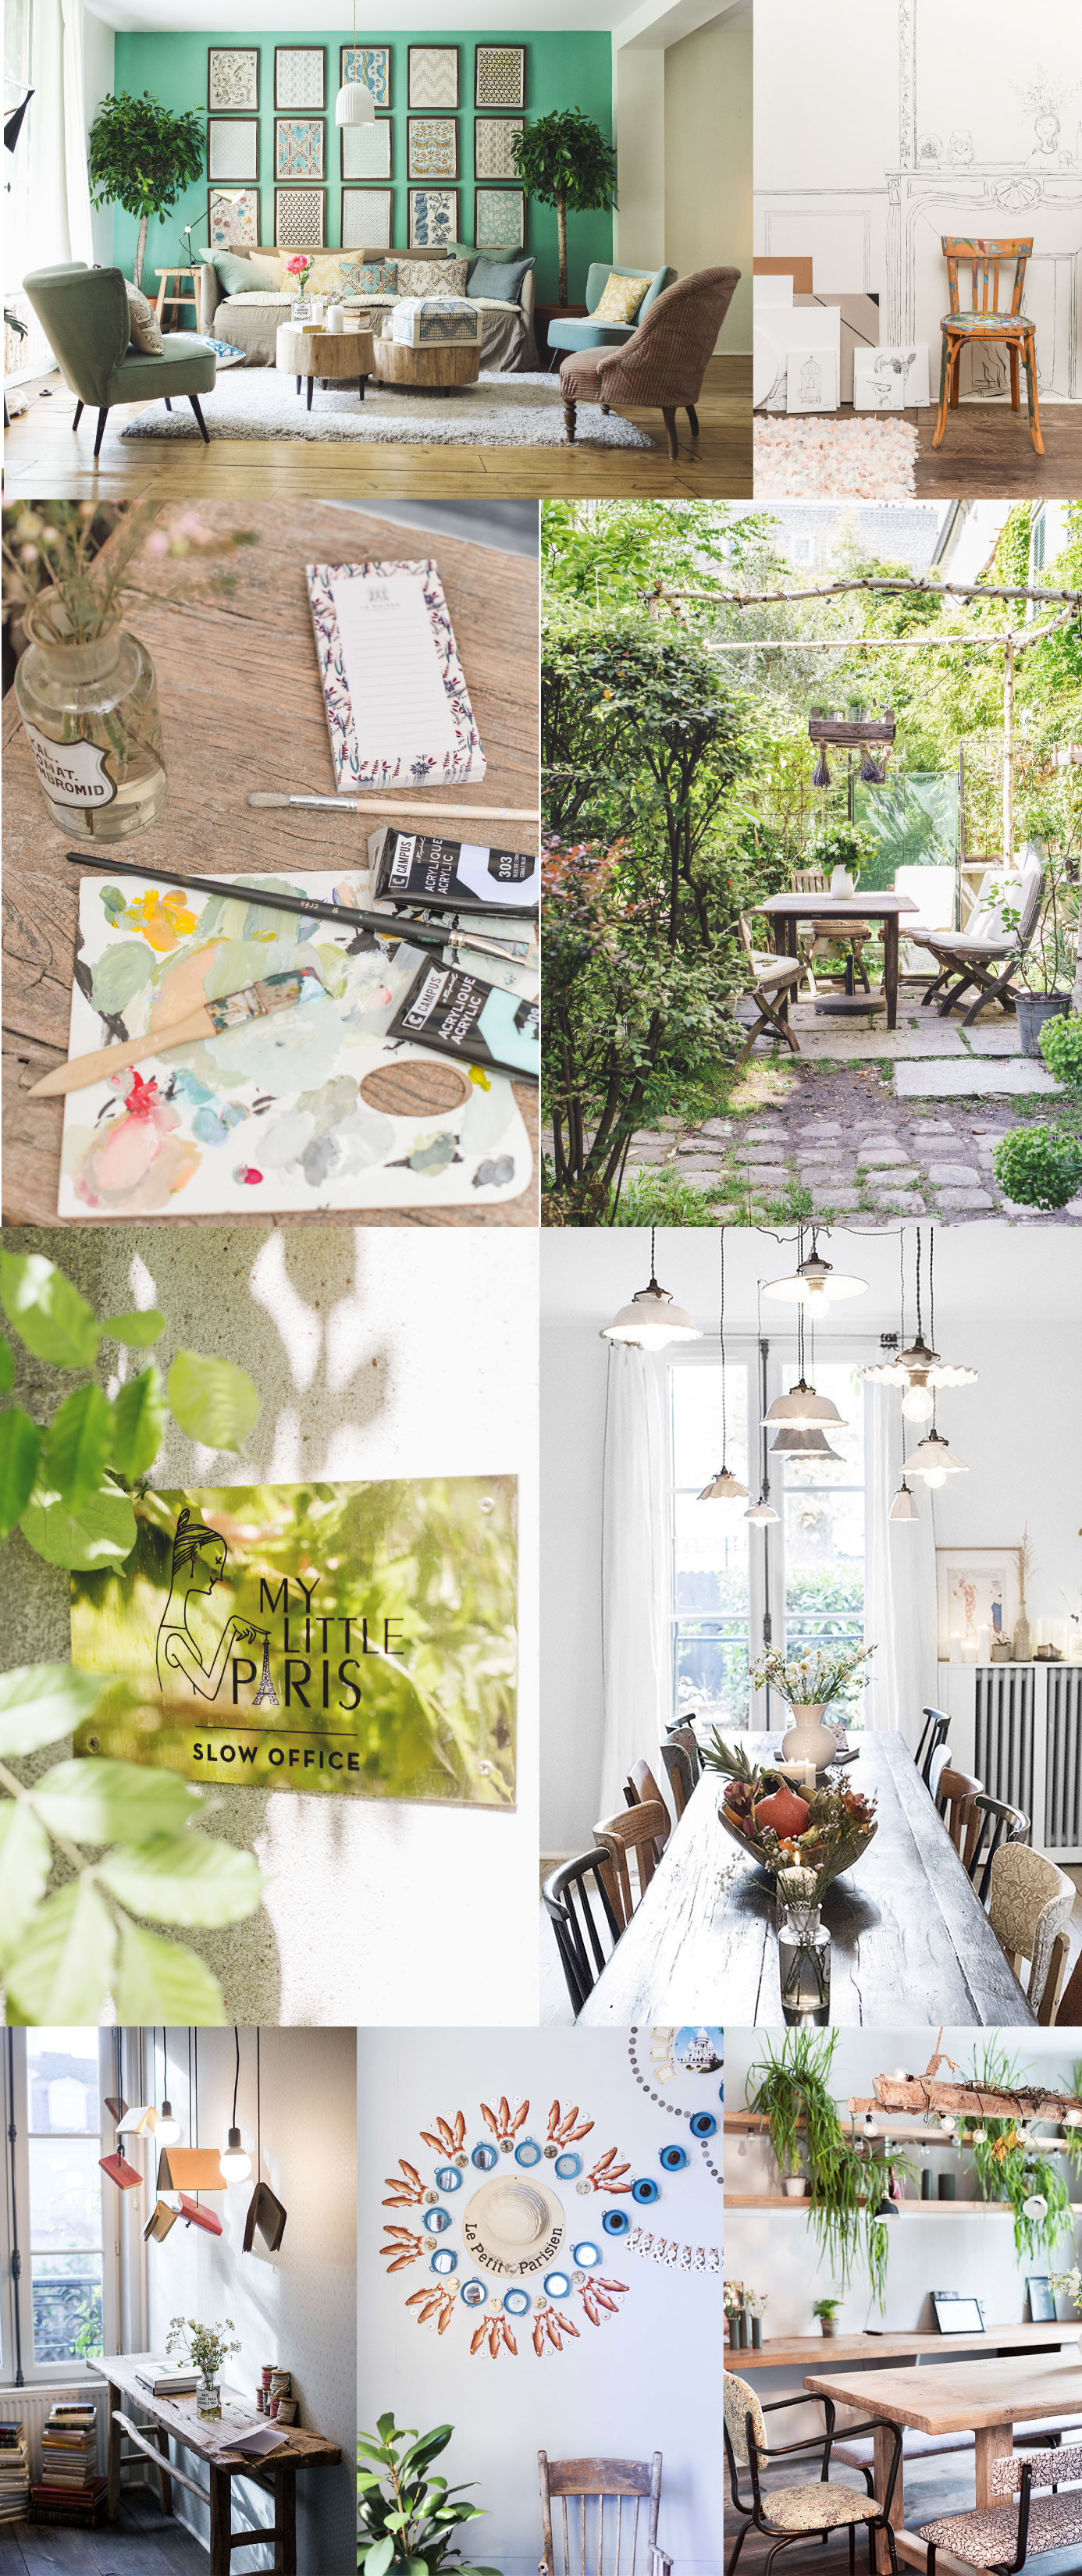 My Little Paris is opening its summer house in Montmartre